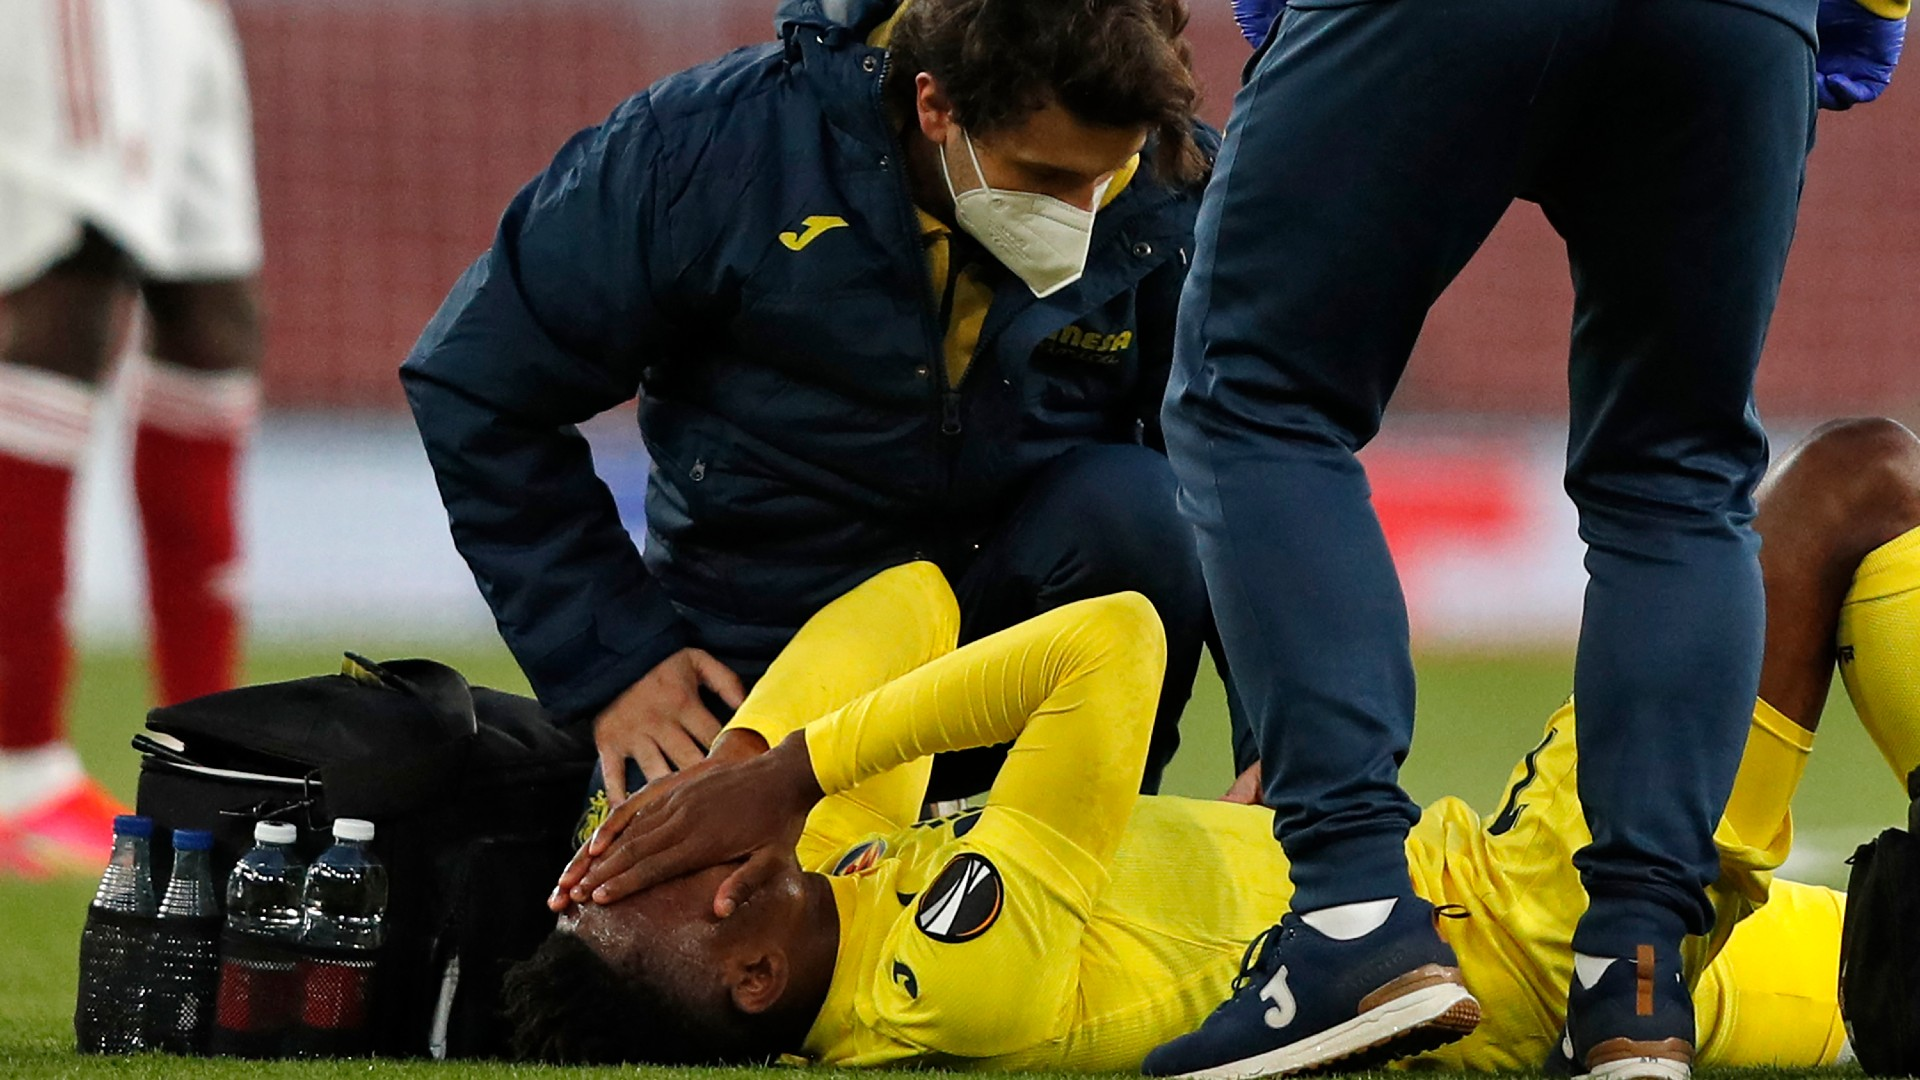 Villarreal's Chukwueze doubtful for Europa League final after suffering hamstring injury